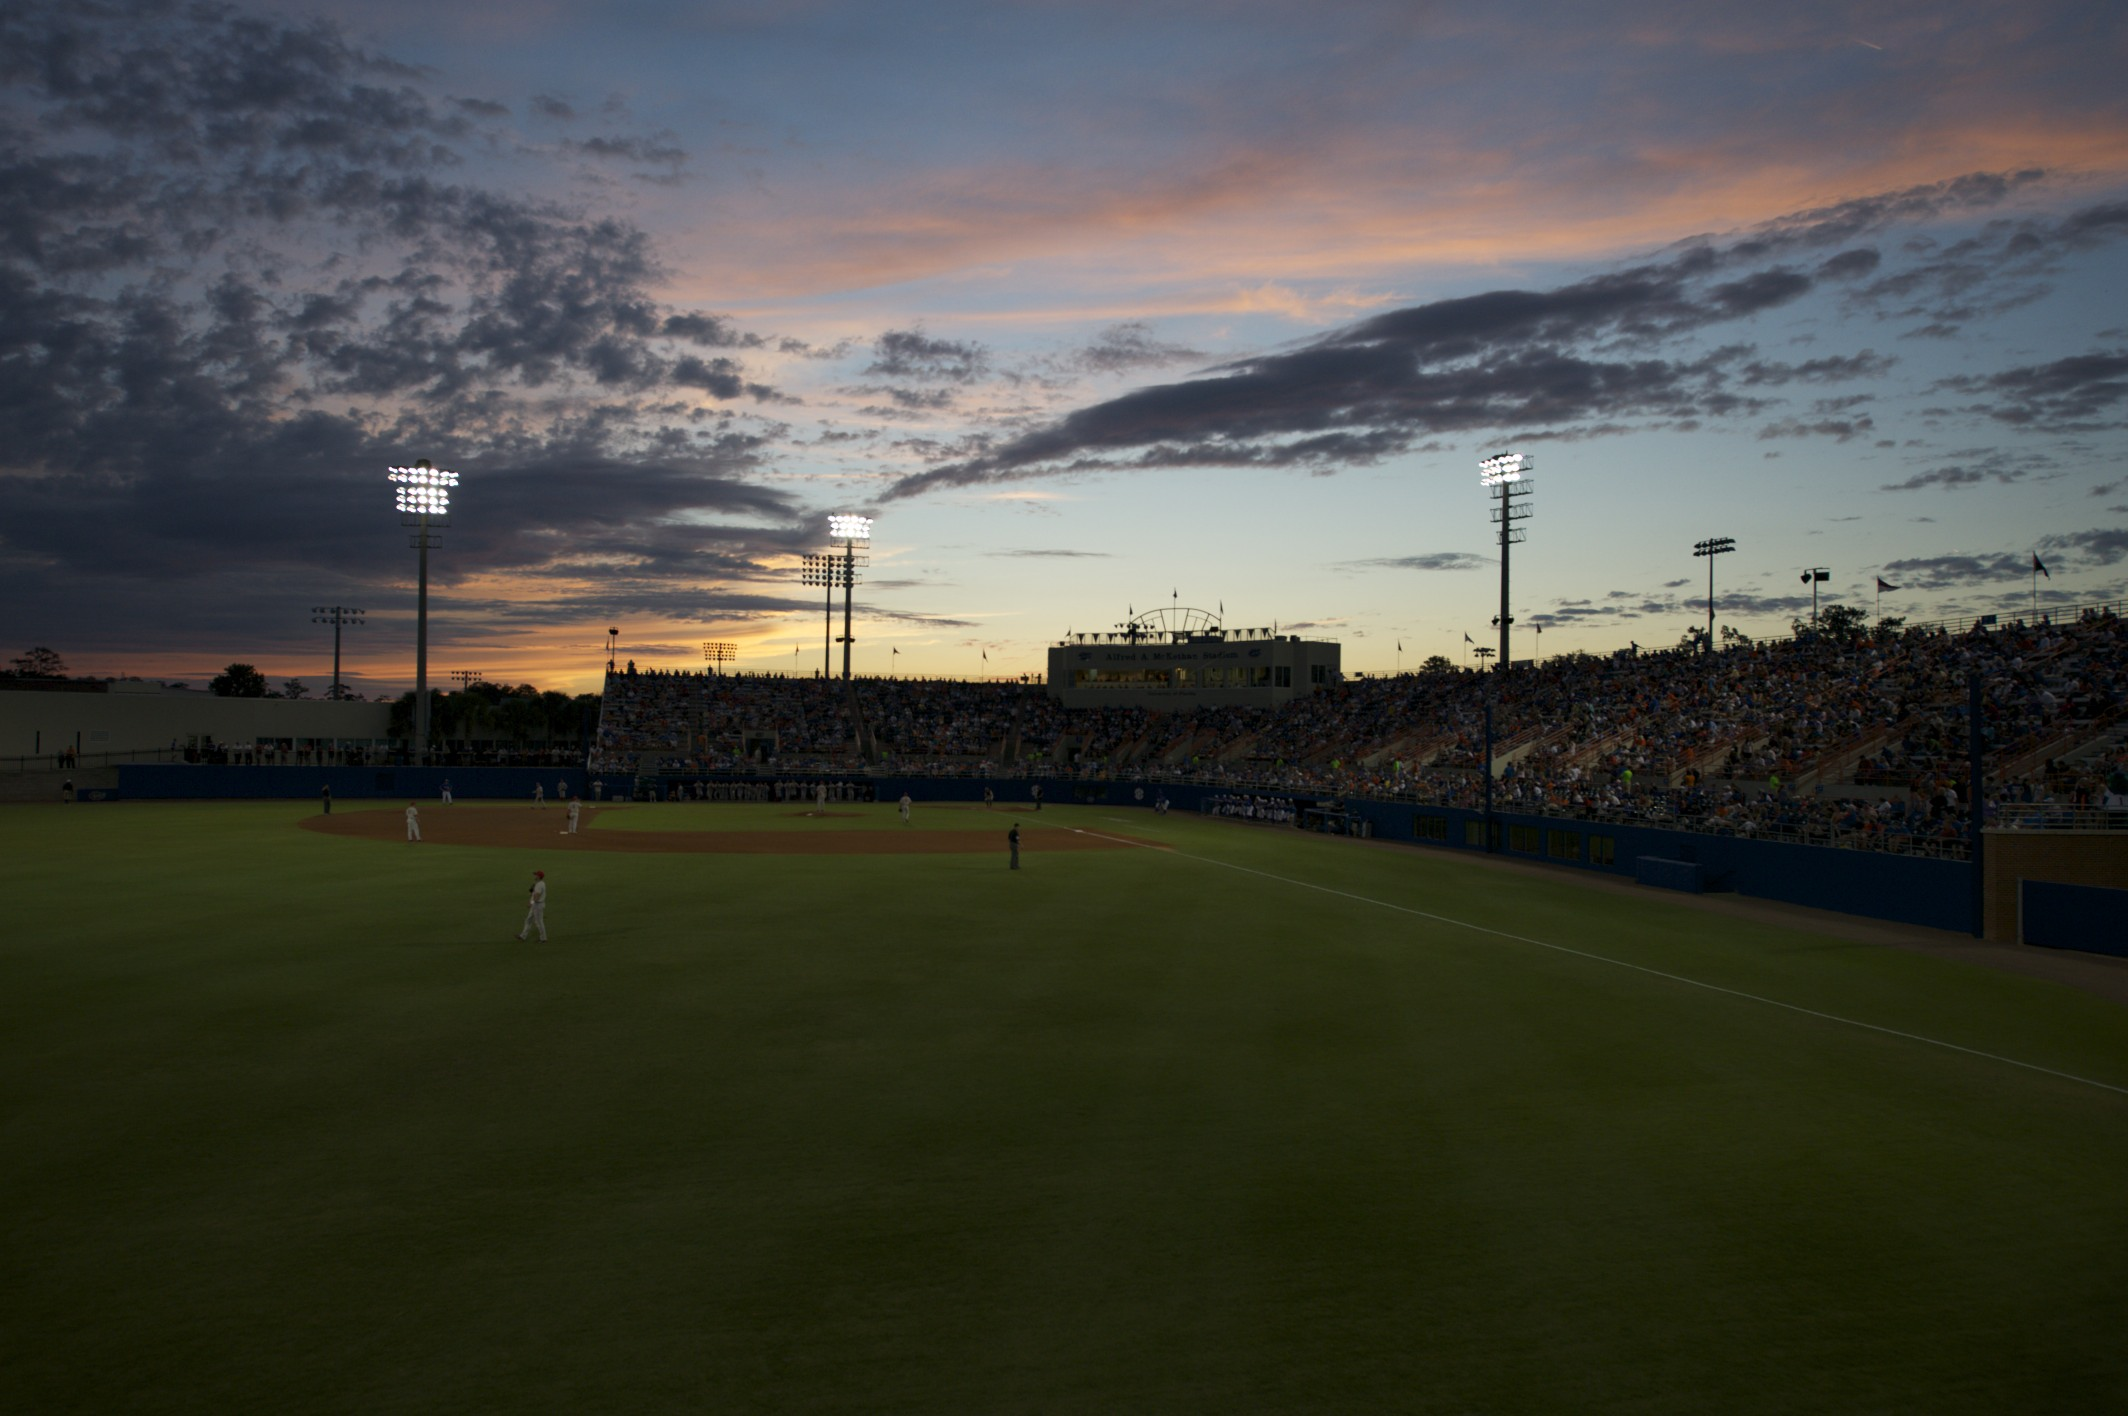 4,840 fans cheered on the Gators Friday night against the Georgia Bulldogs.